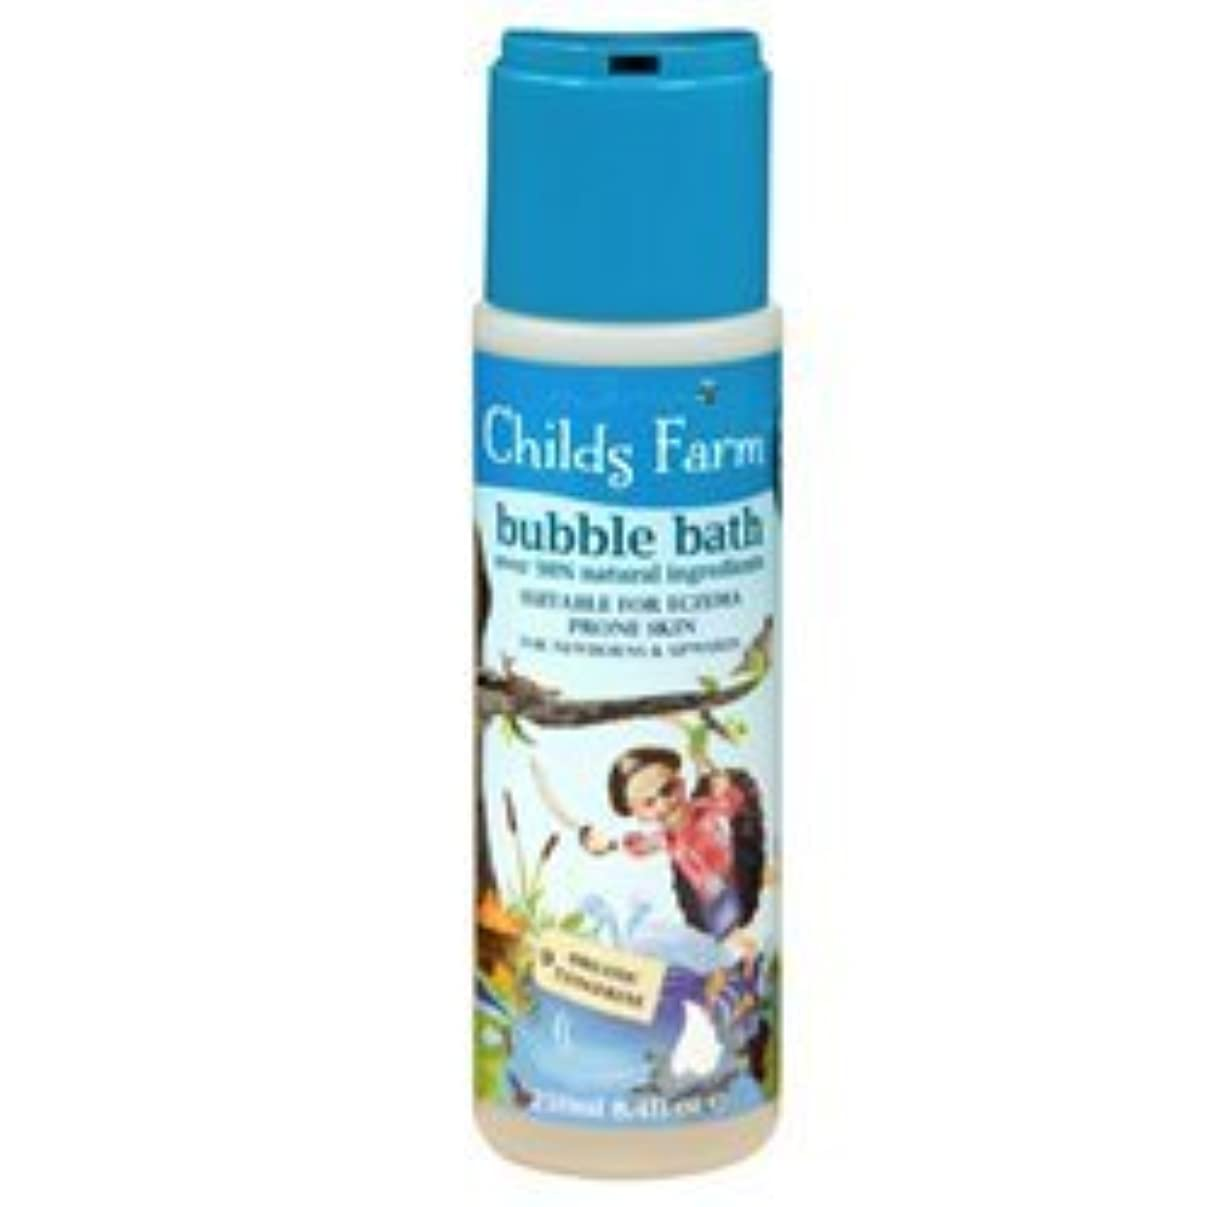 お香殺人者機械的Childs Farm Bubble bath for Buccaneers 250ml x 1 by Childs Farm [並行輸入品]